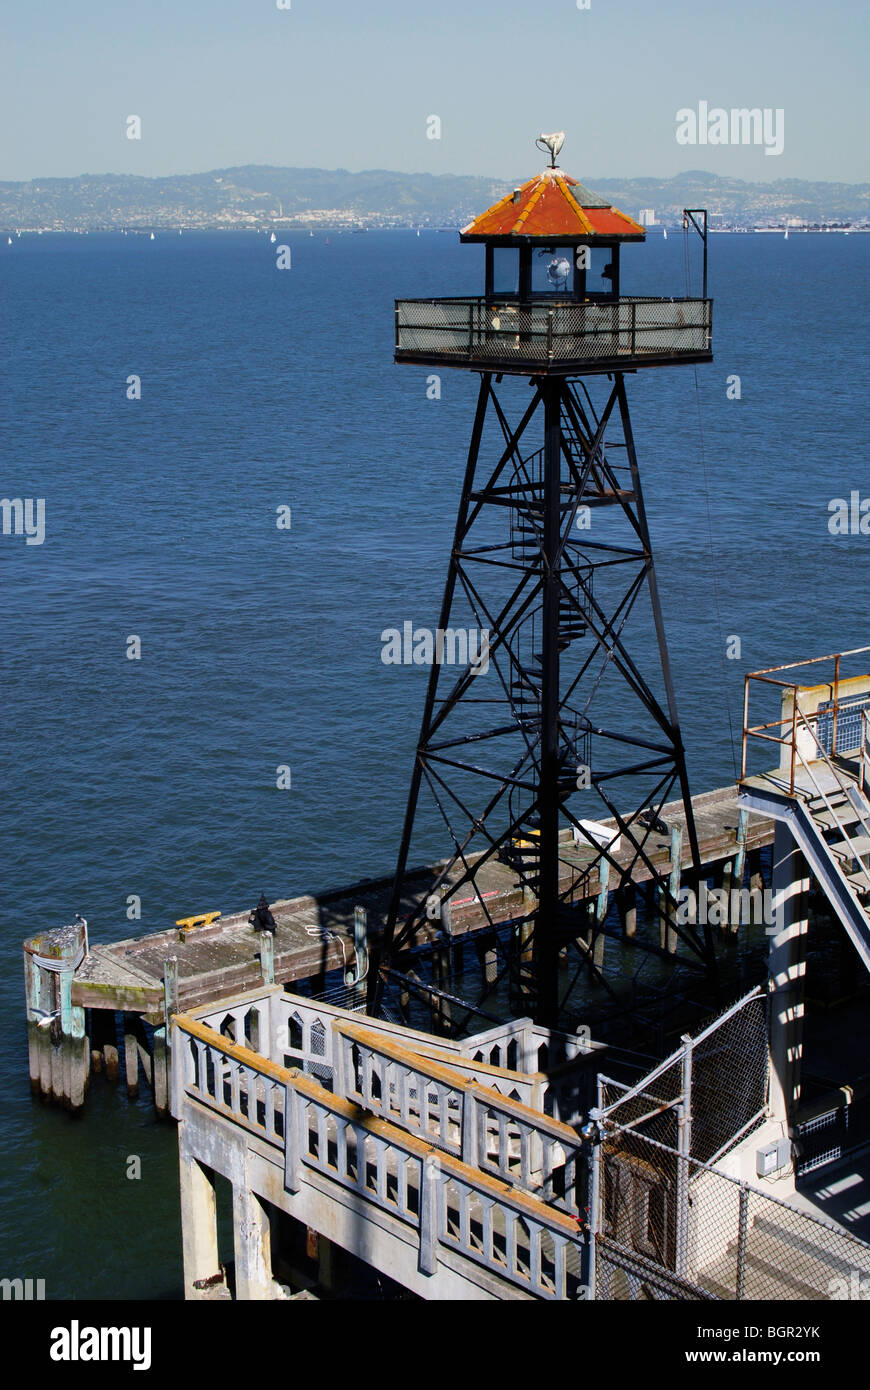 VERTICAL VIEW WATCH WATCH-TOWER WATCHFUL WATER WET TORRE LIGHT FARO STABILITY WARNING COSTA AGUA MAR OCEAN ALTO Stock Photo